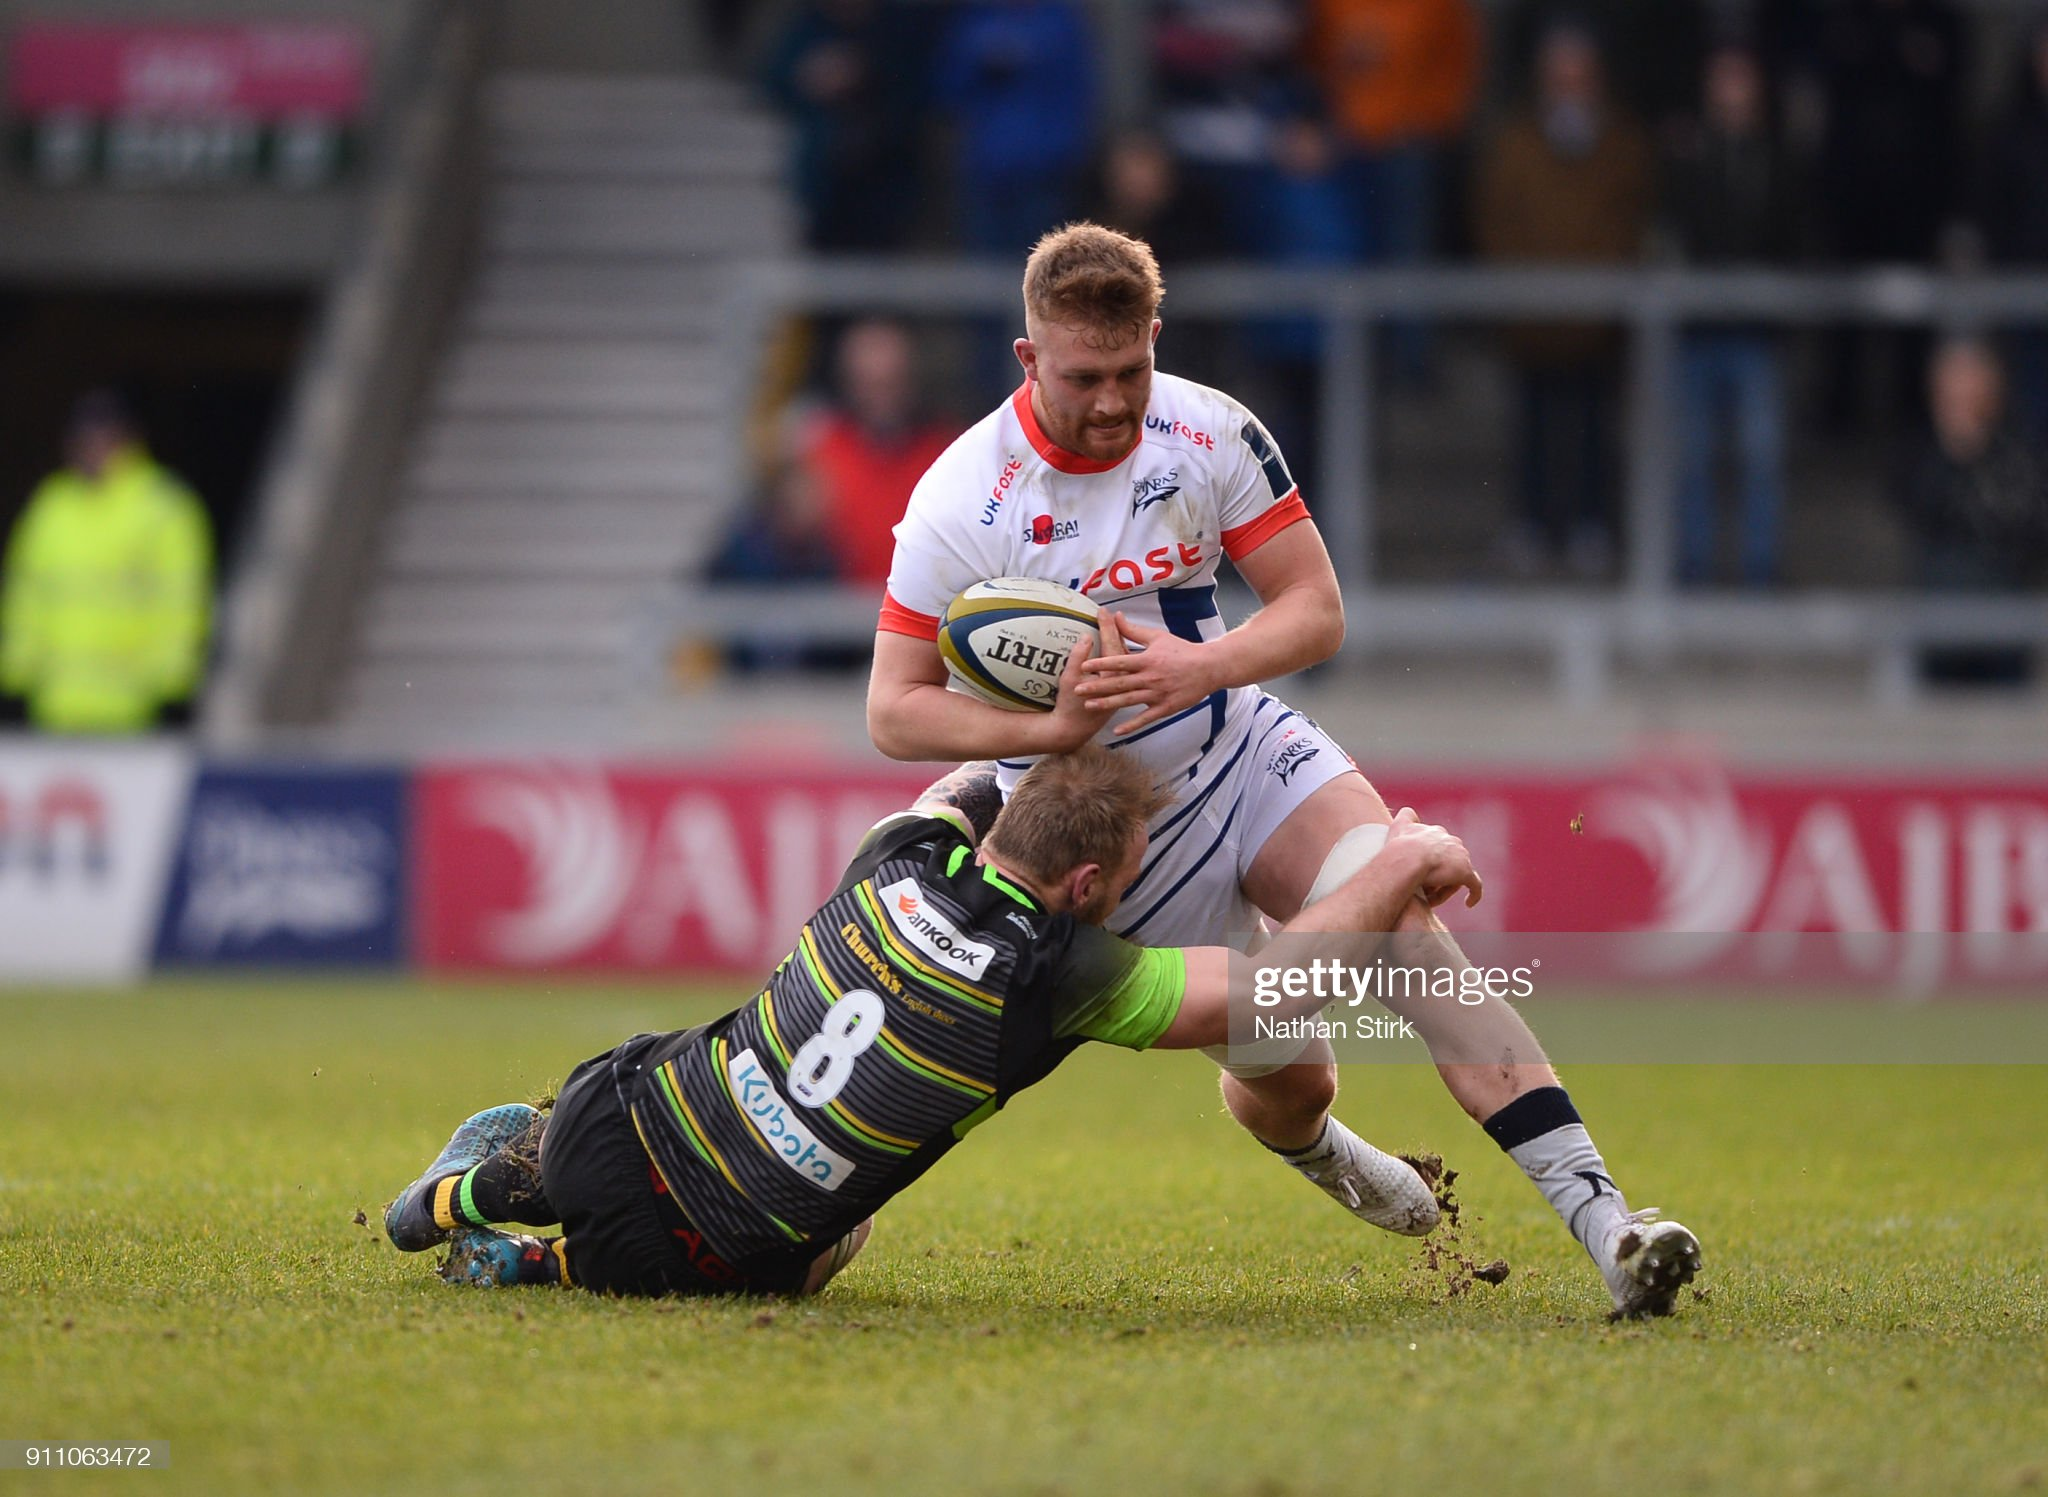 Sam Moore's Turn To Fill Large Nick Williams-Shaped Hole For Cardiff Blues